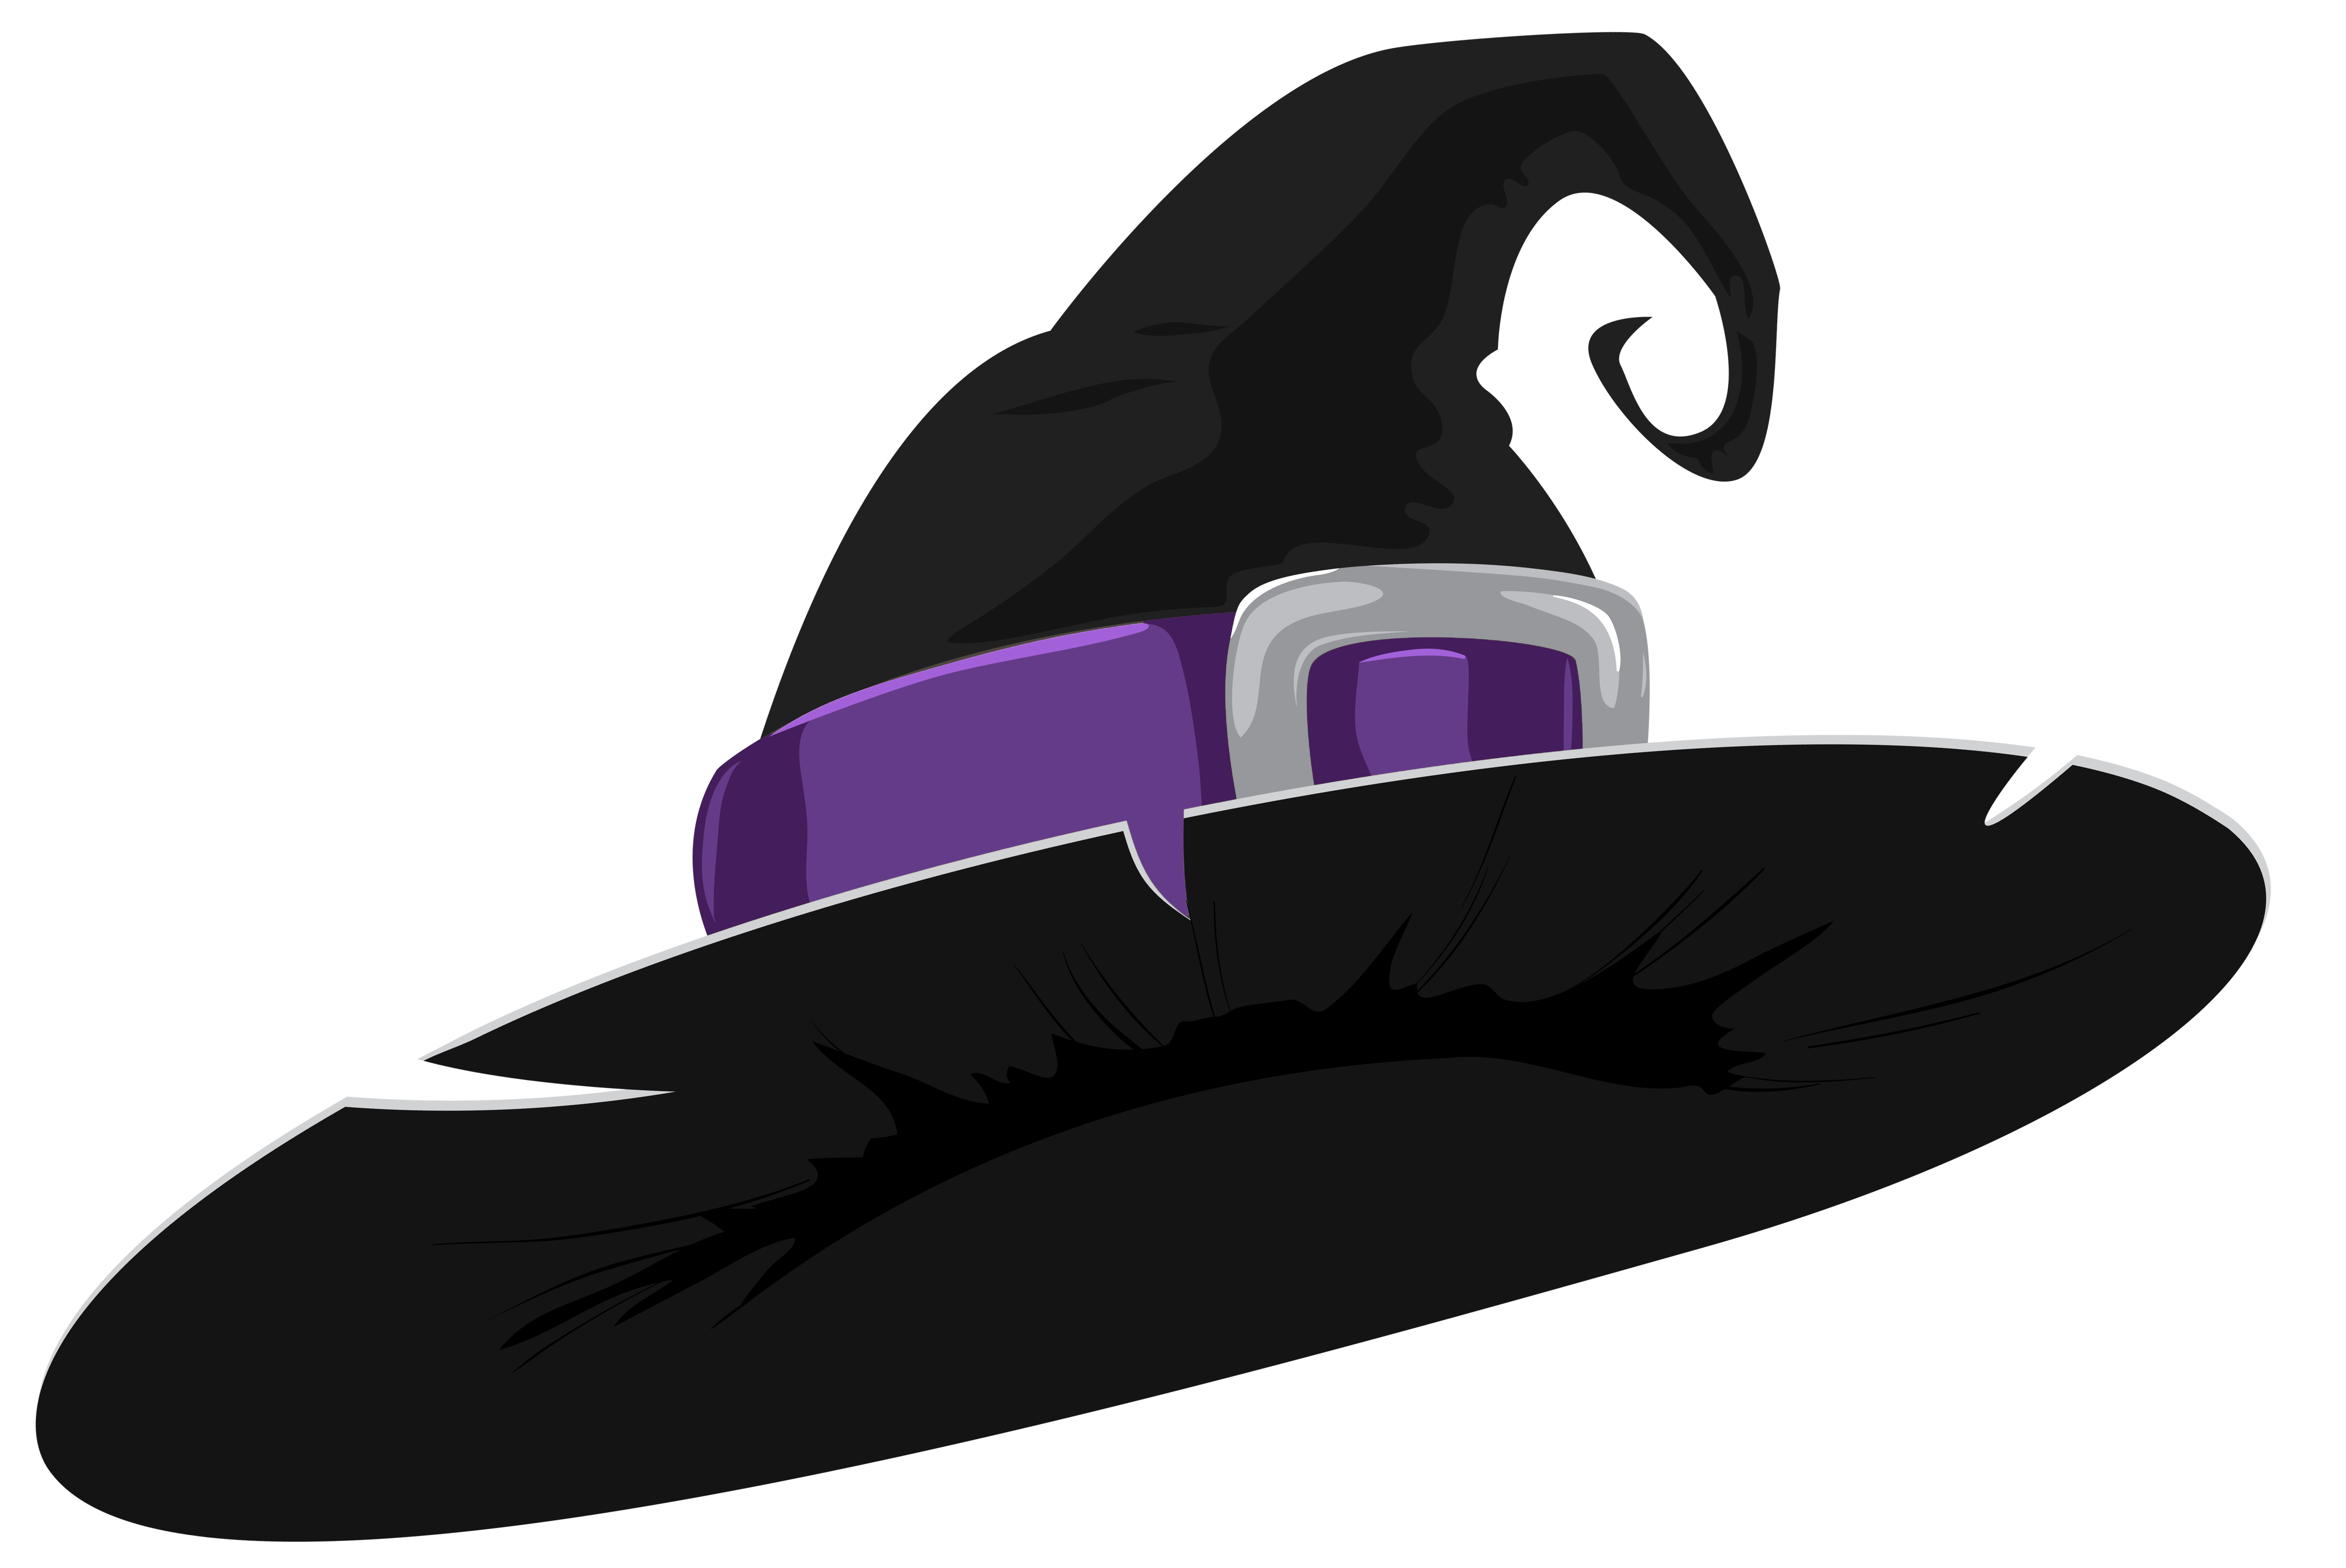 Witch Hat Png & Free Witch Hat.png Transparent Images ...